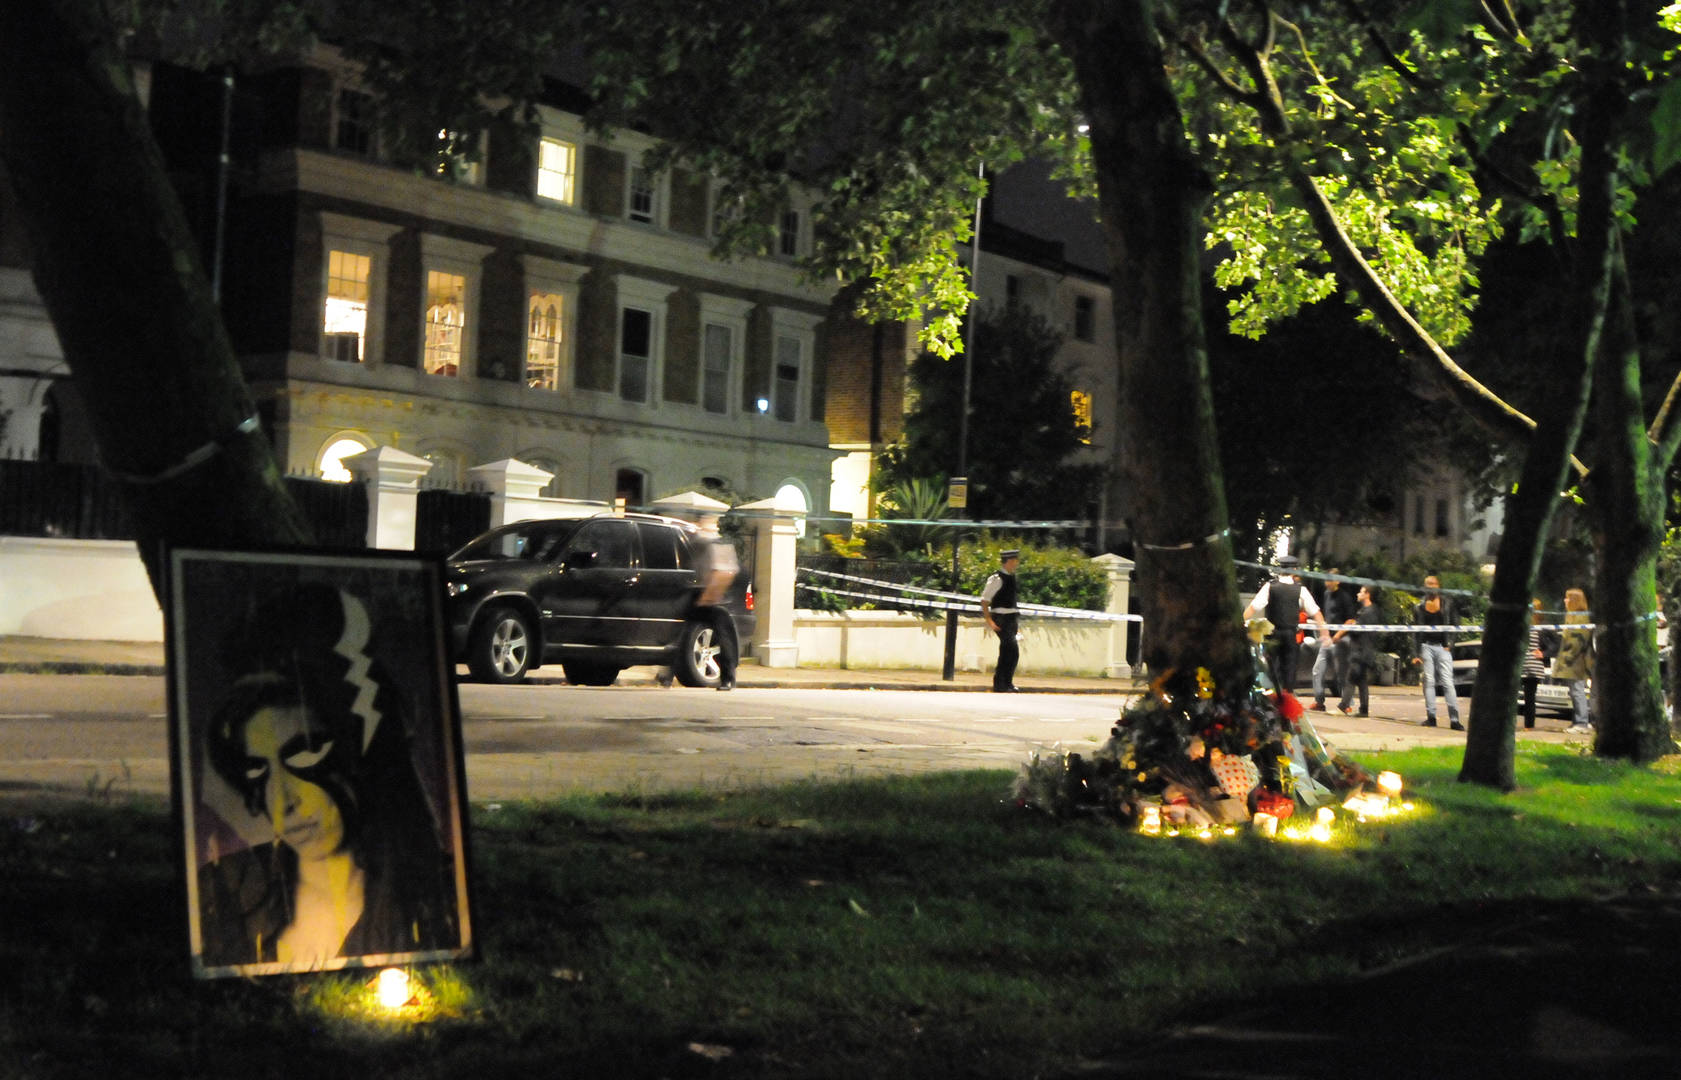 Amy Winehouse Memorial Outside Her Home